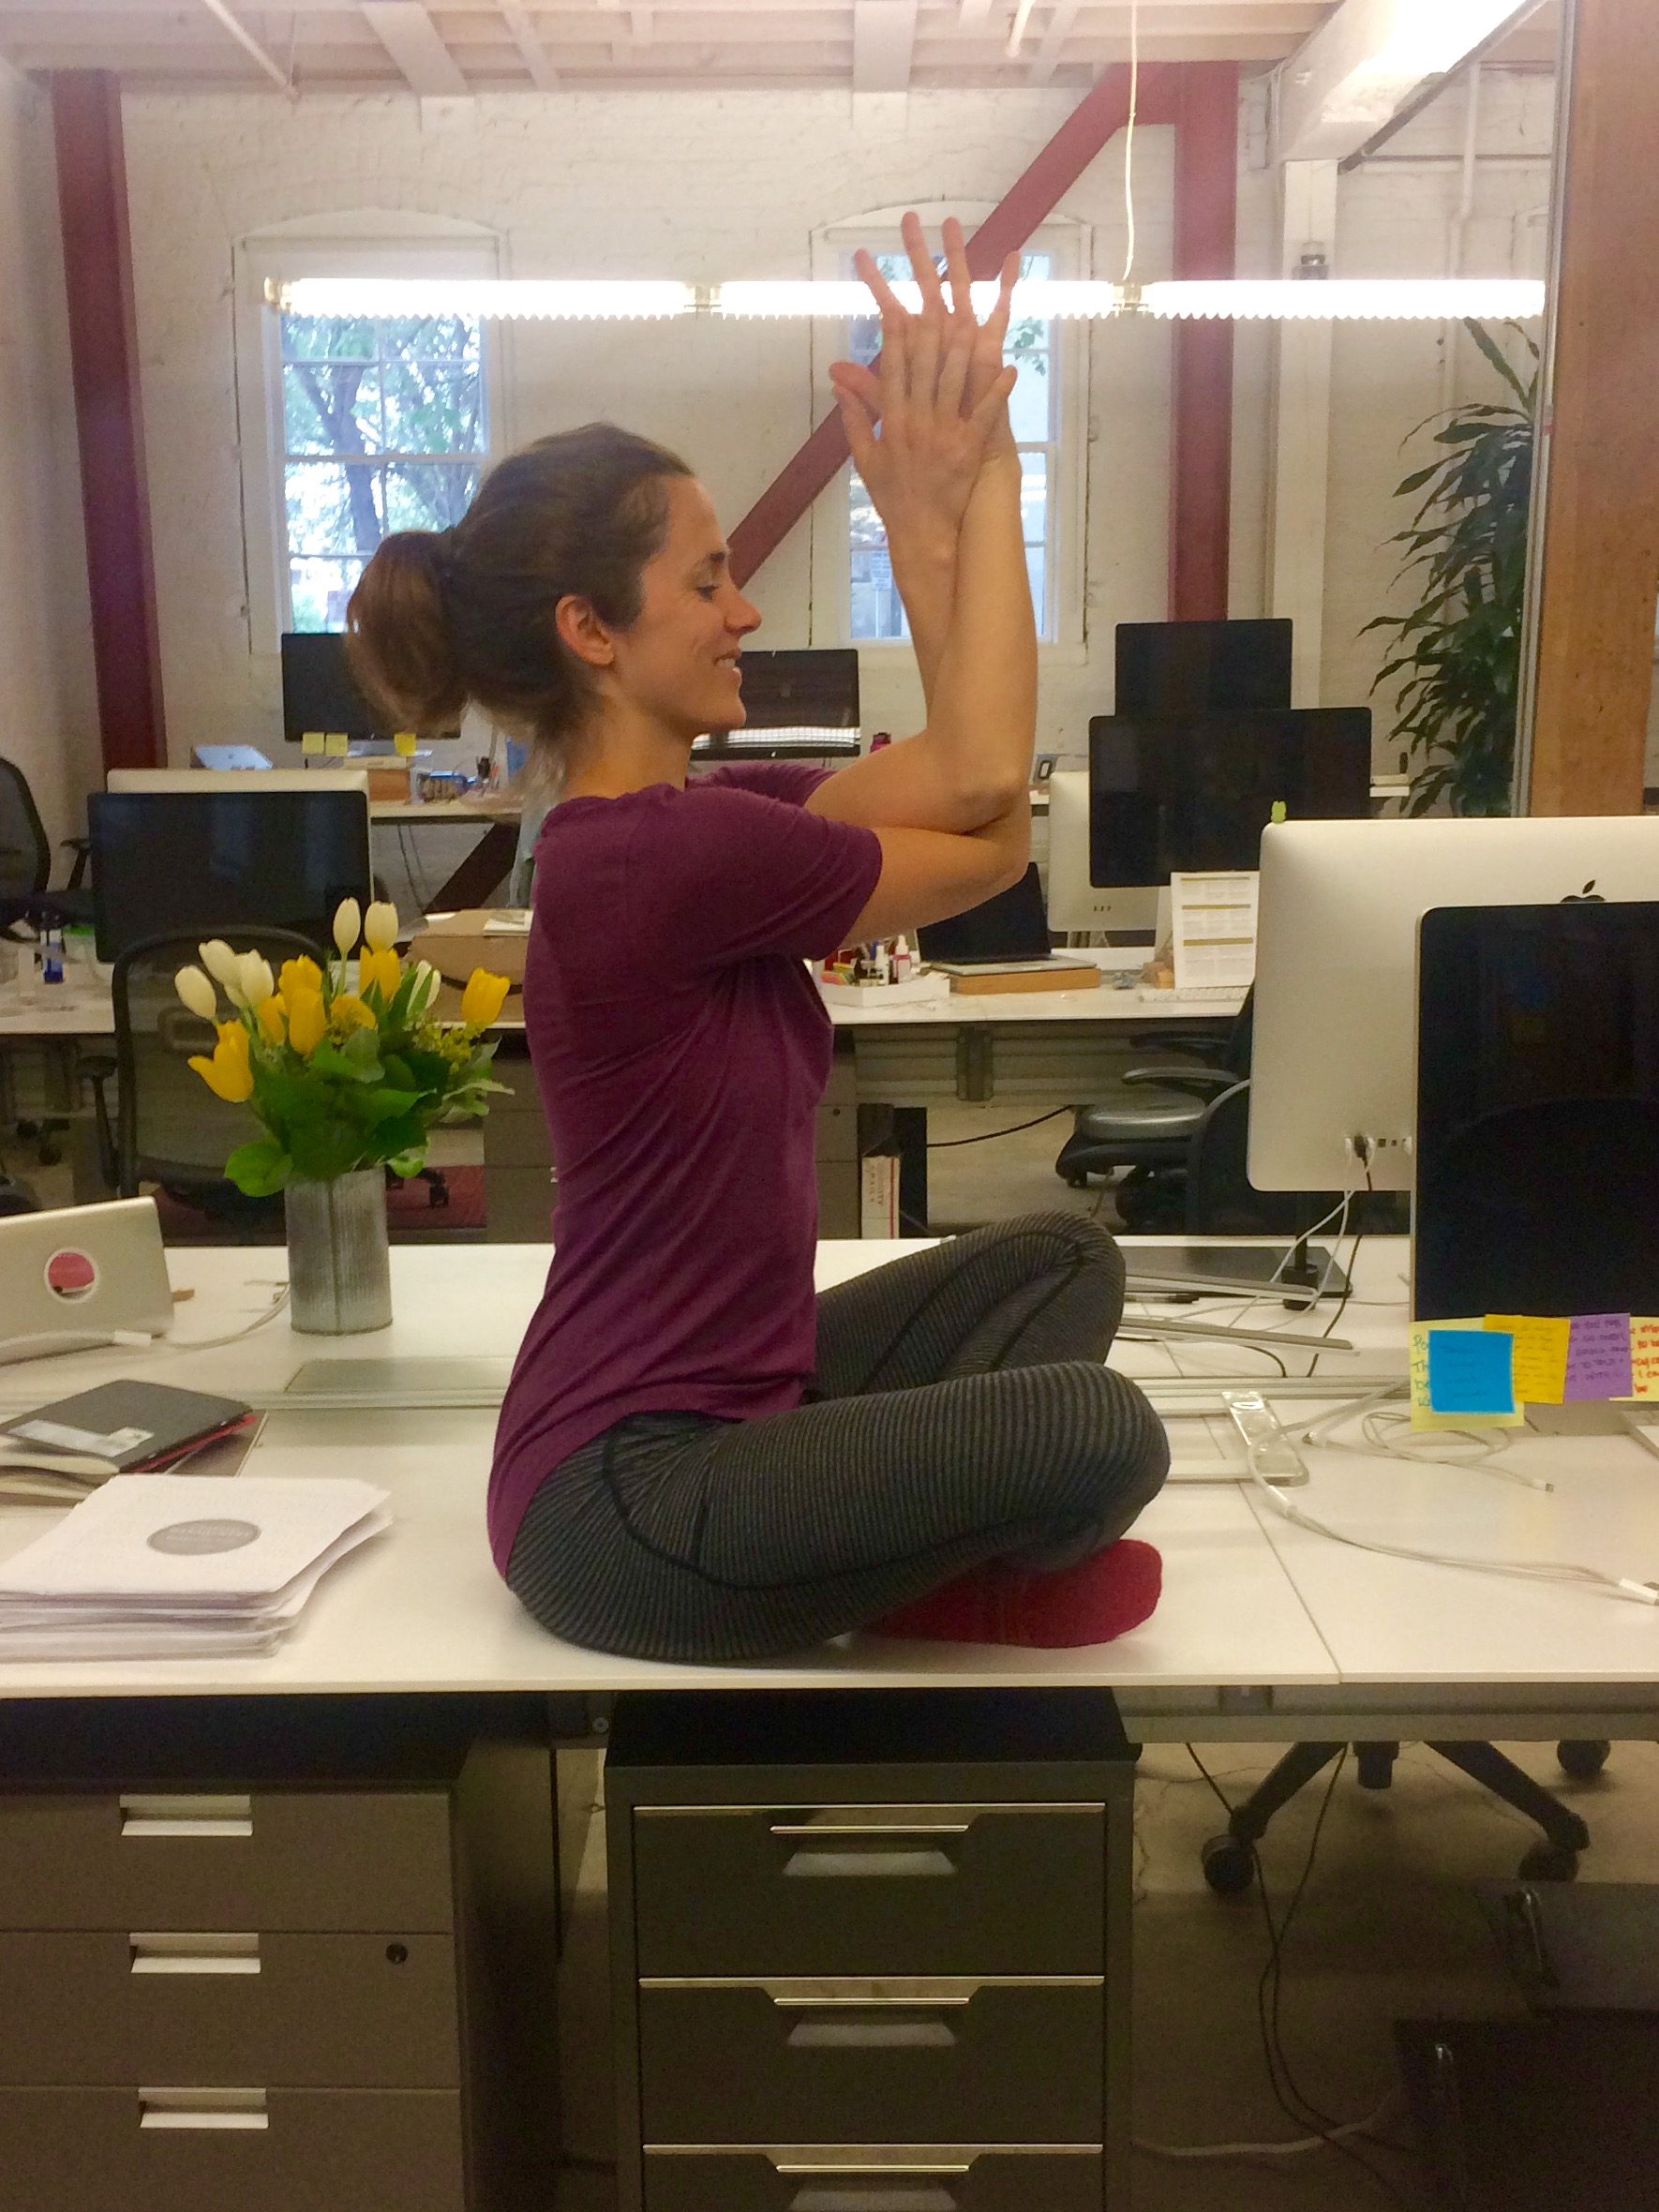 - Yoga for EVERYbody in ANY space